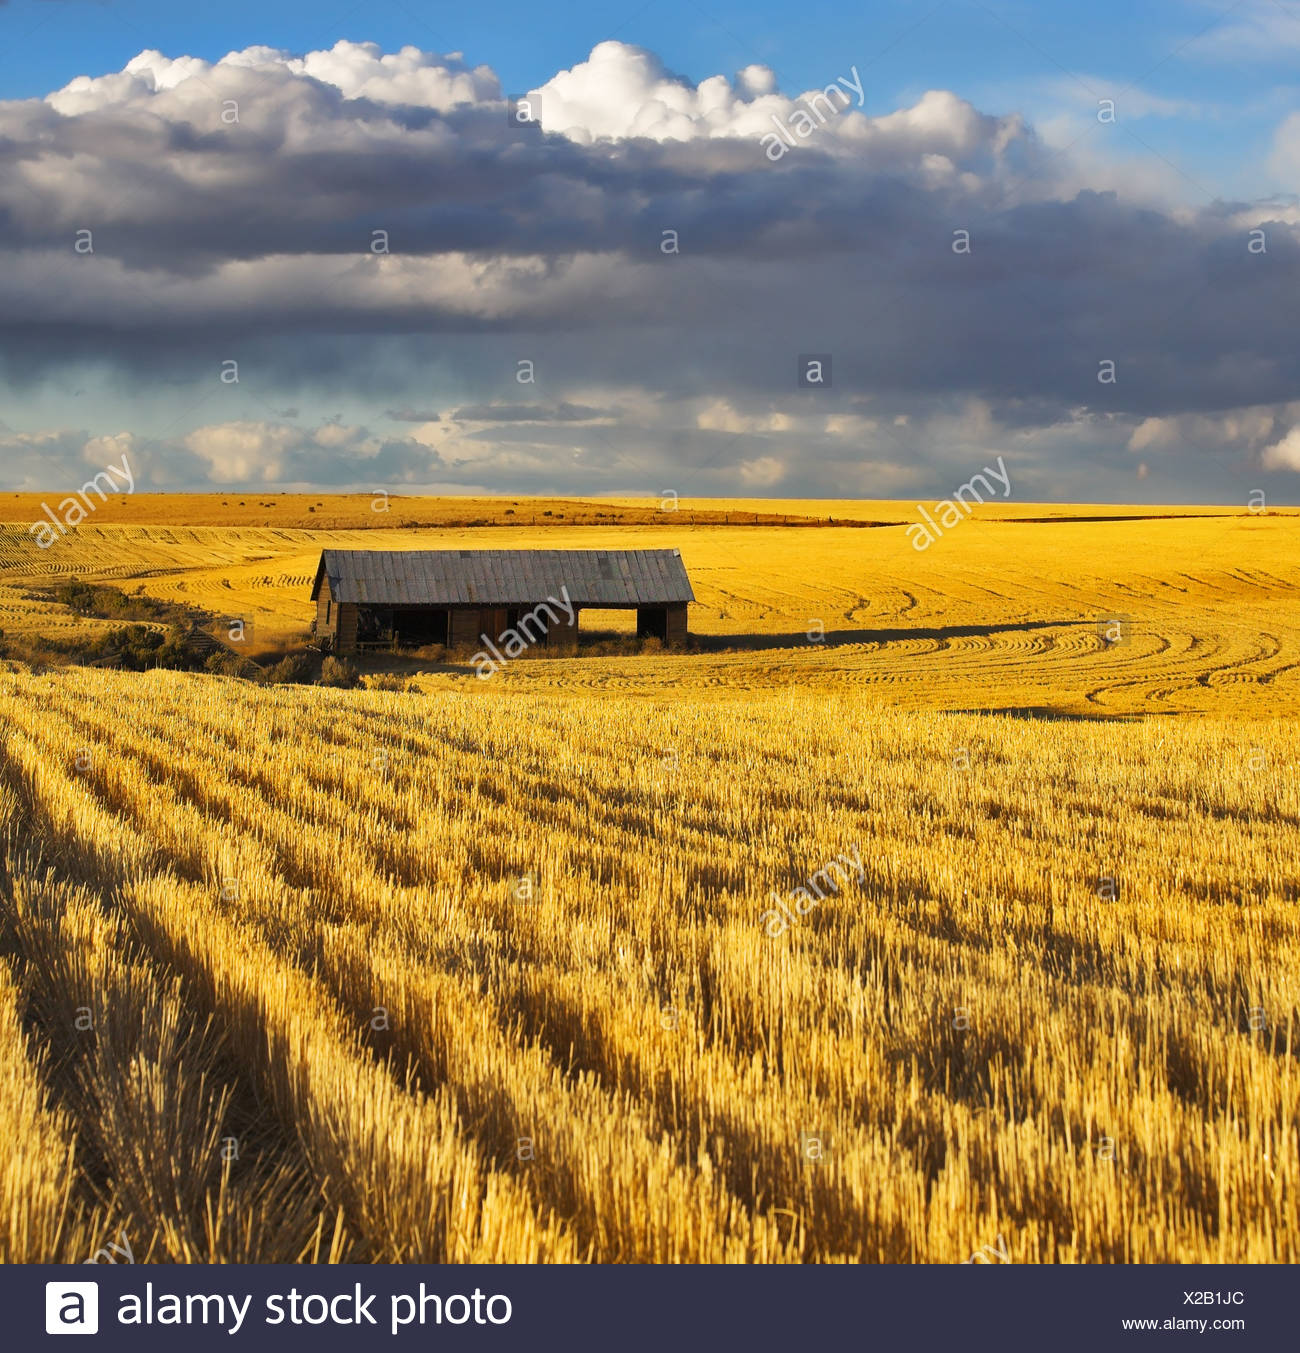 The field after harvesting - Stock Image